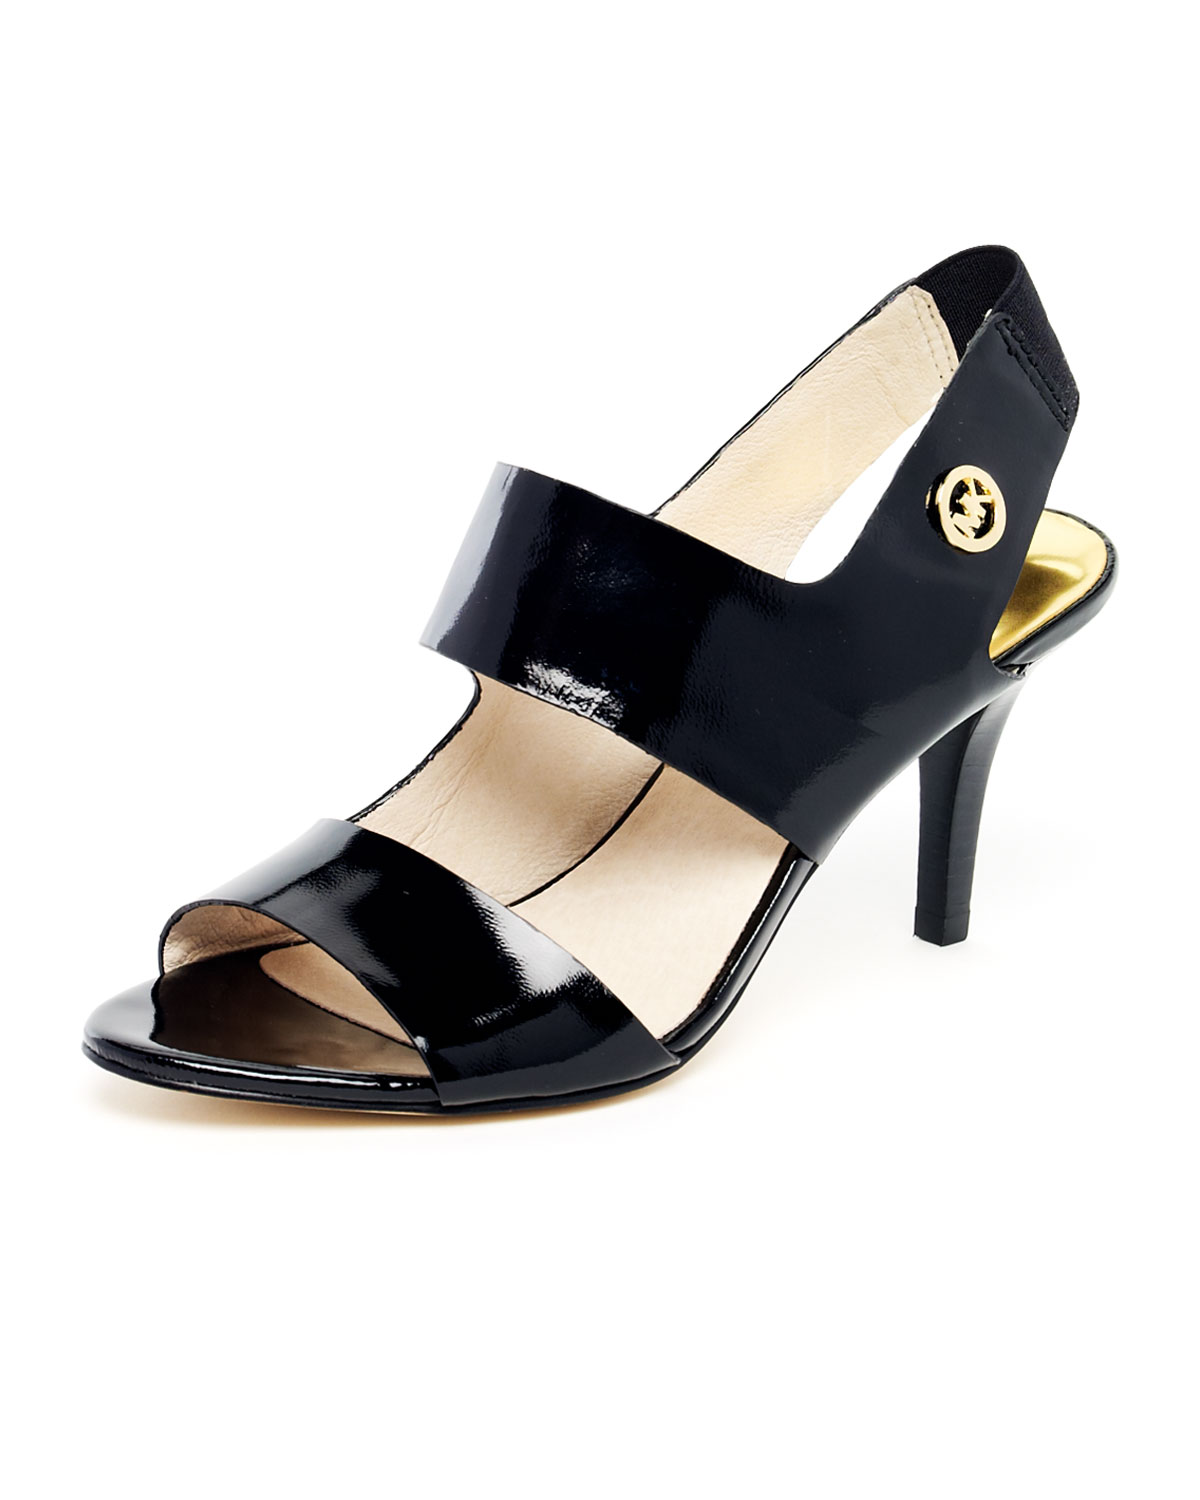 Dune Patent Leather Shoes